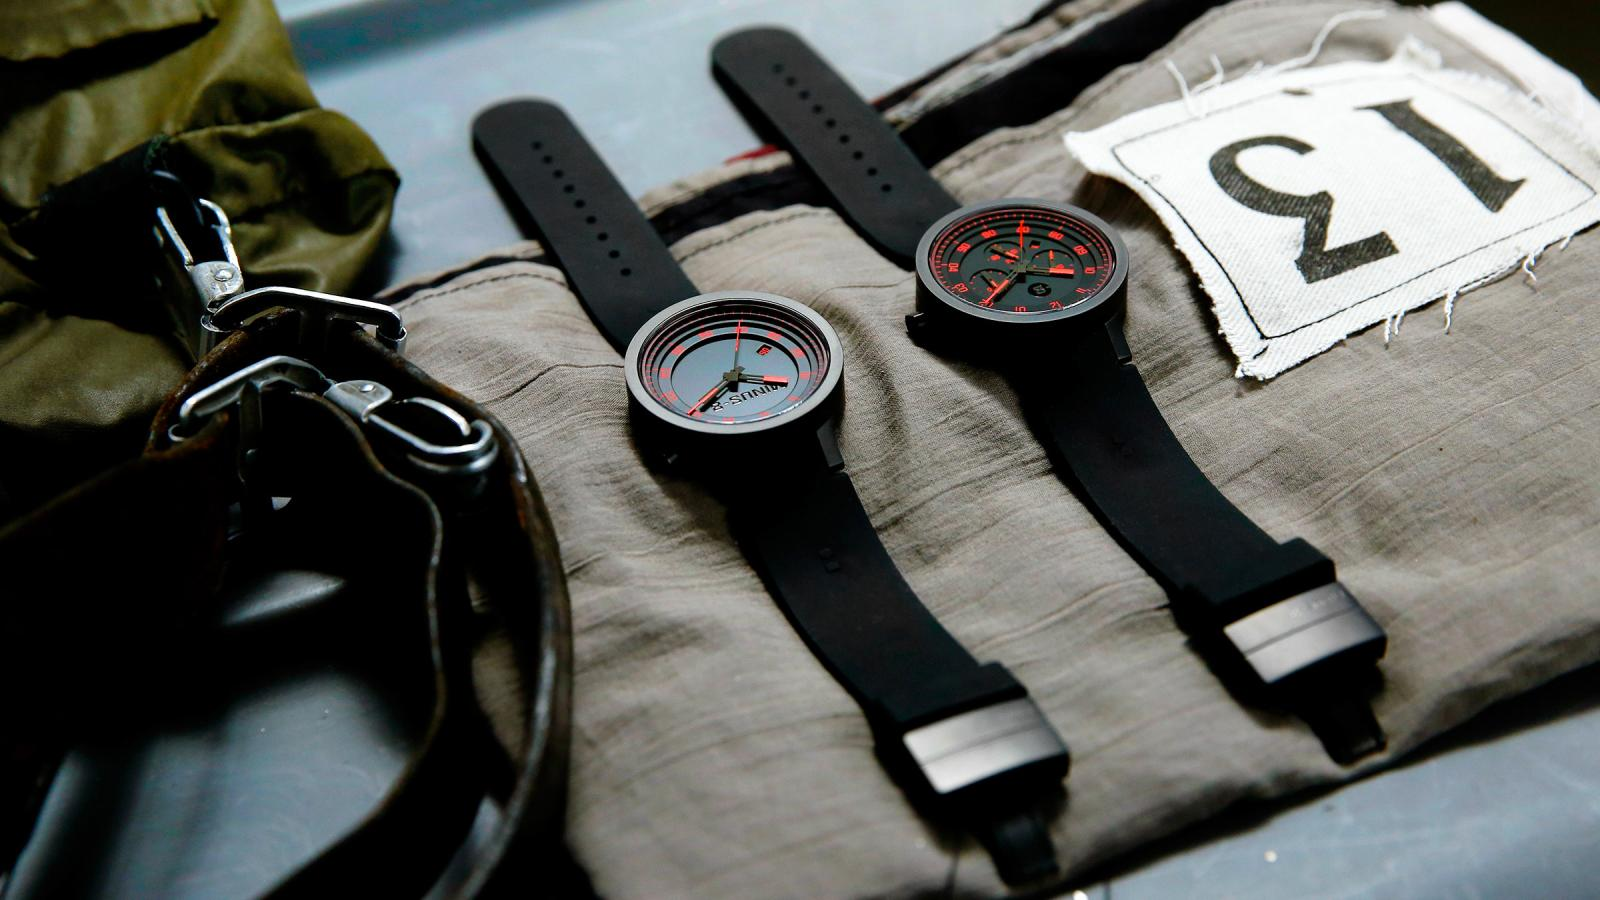 Product Design Process: MINUS-8 Watches